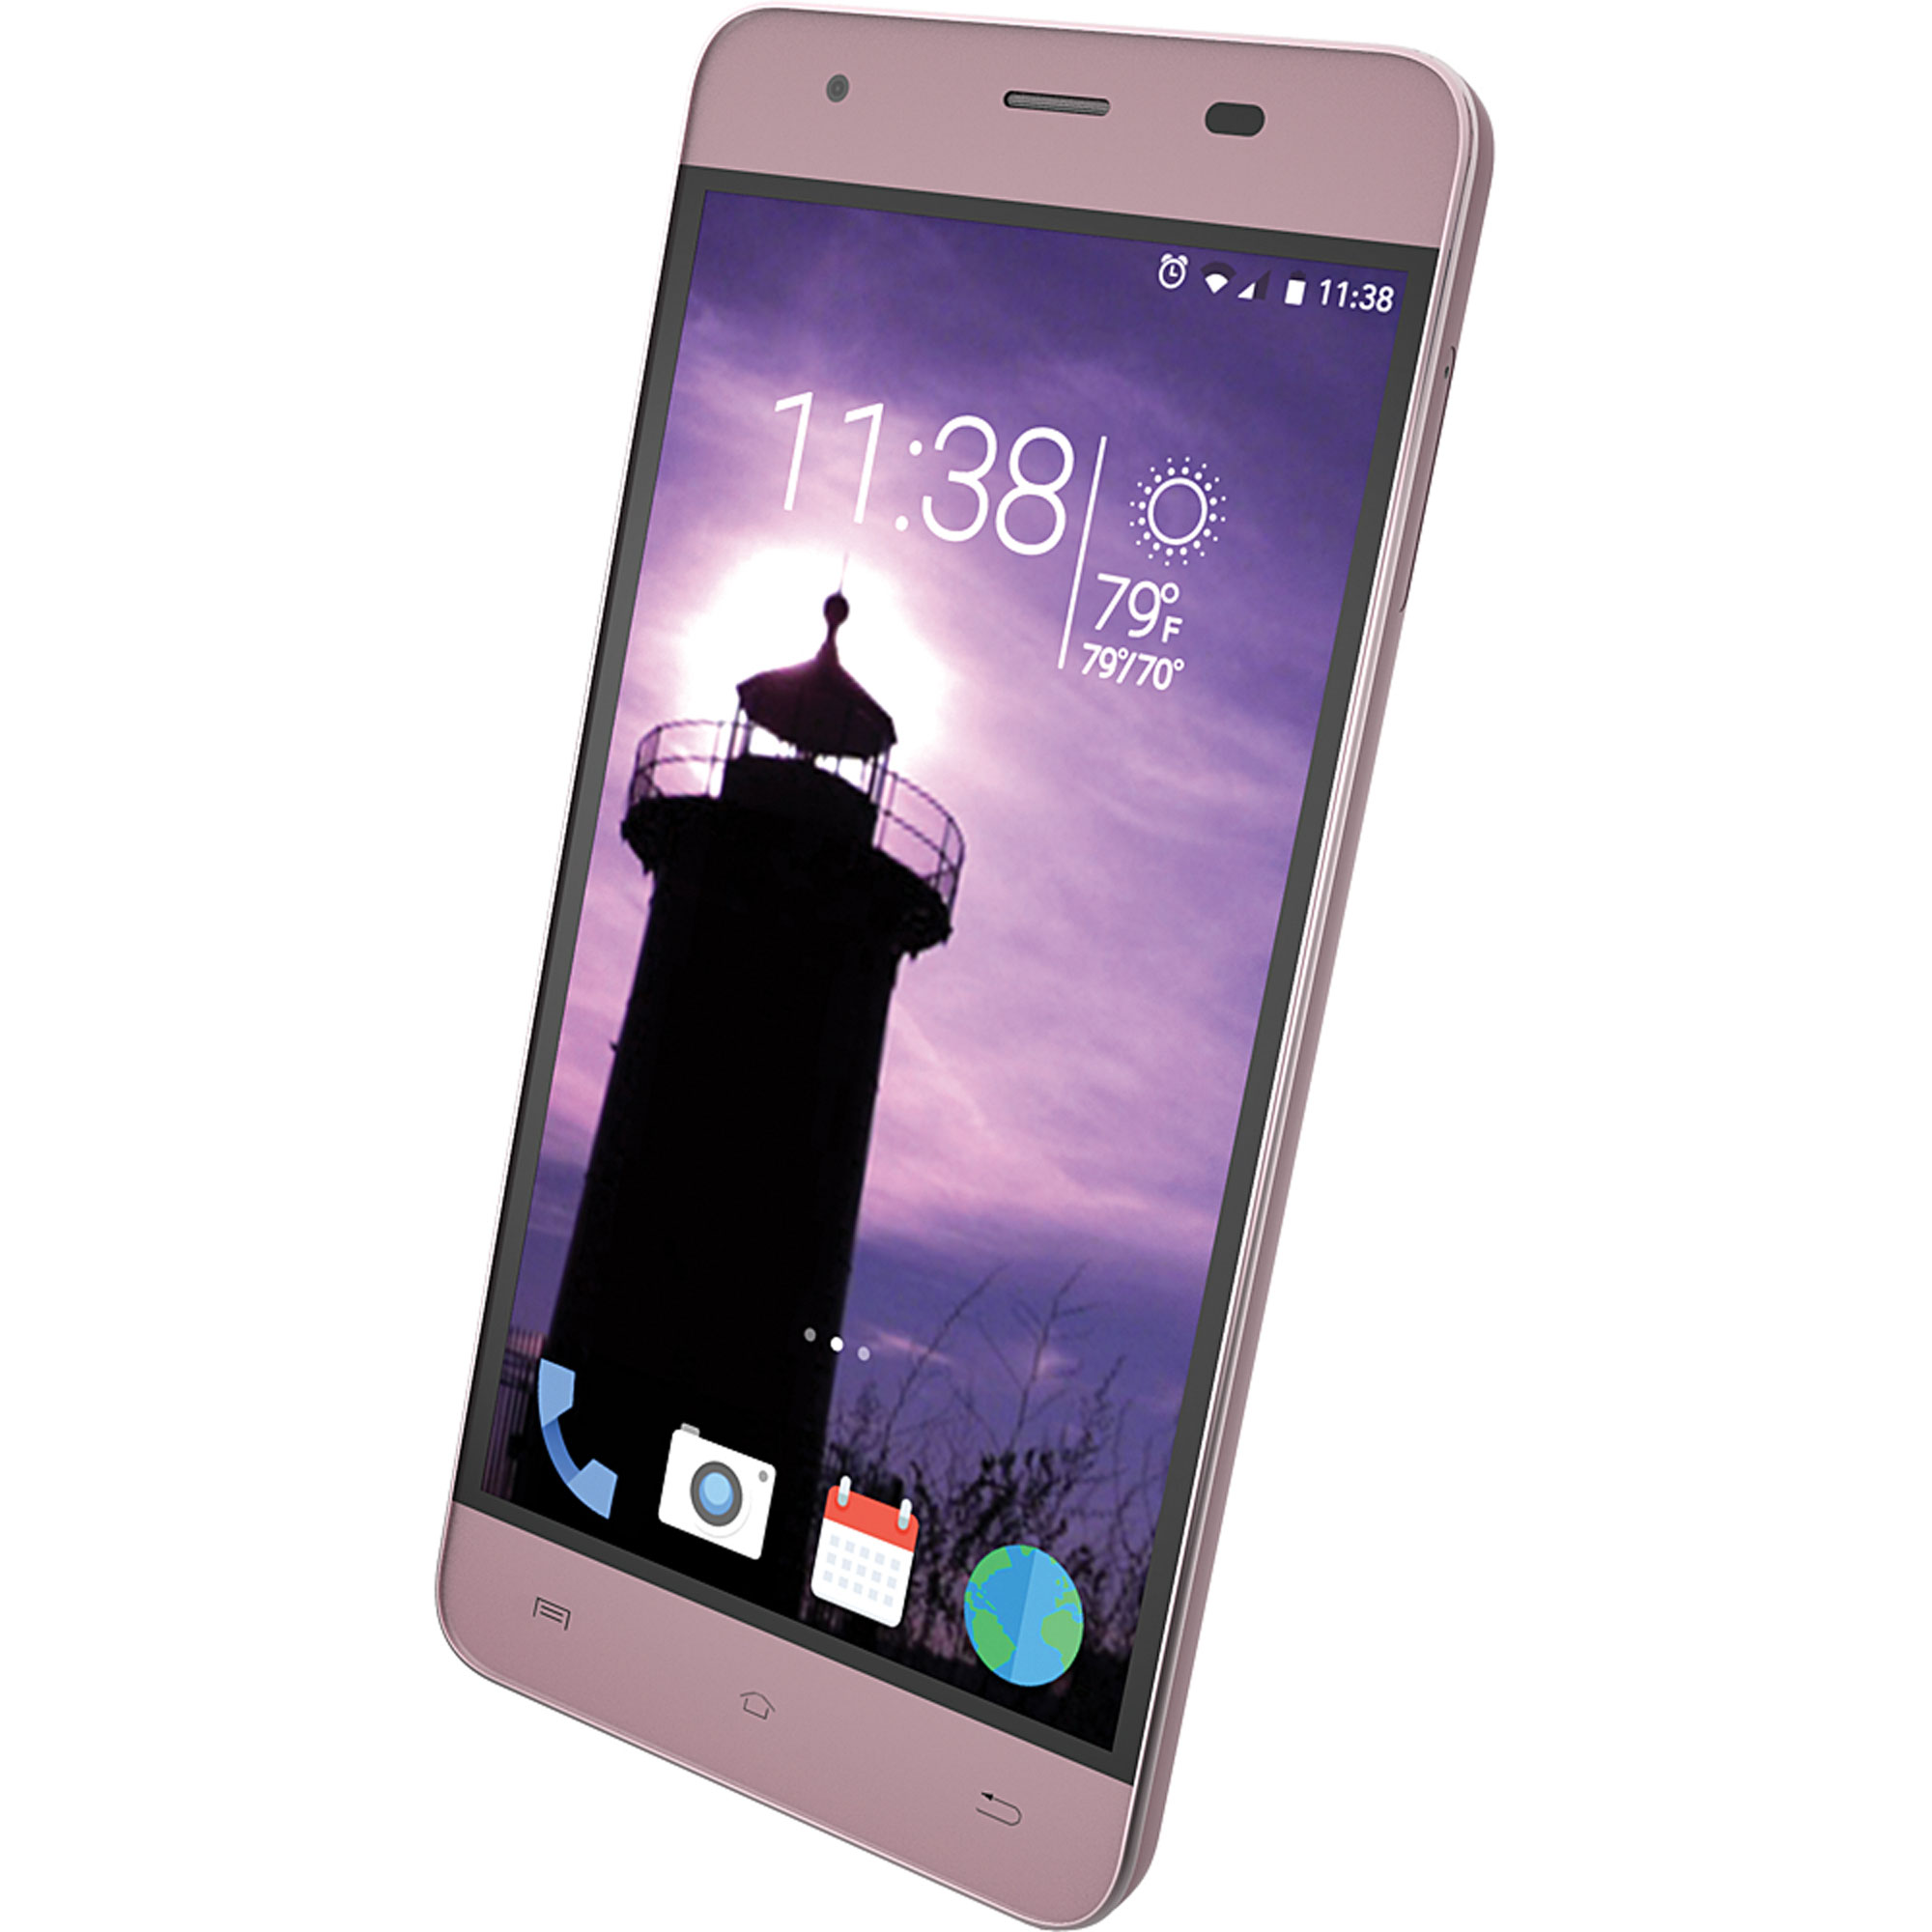 """Slide Unlocked Dual SIM 5"""" HD IPS Smartphone, Android 5.1 Quad Core 1.0GHz Processor, 1GB RAM 8GB ROM, 13MP Camera, Nationwide 4G LTE GSM Coverage- Rose Gold"""